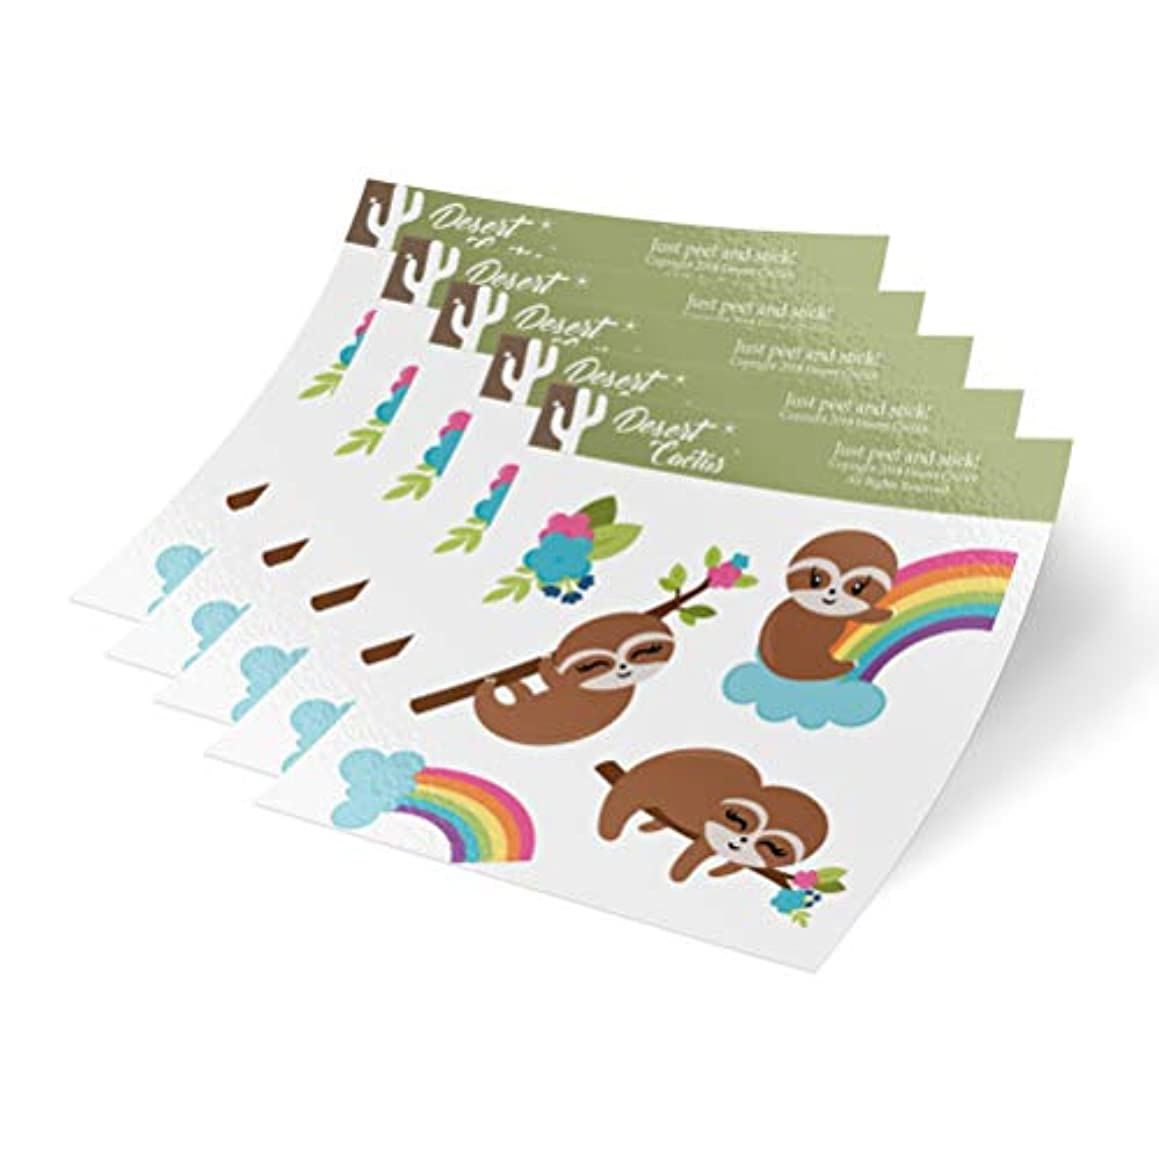 Sloth 5-Pack Themed Sheets of Stickers 6.5